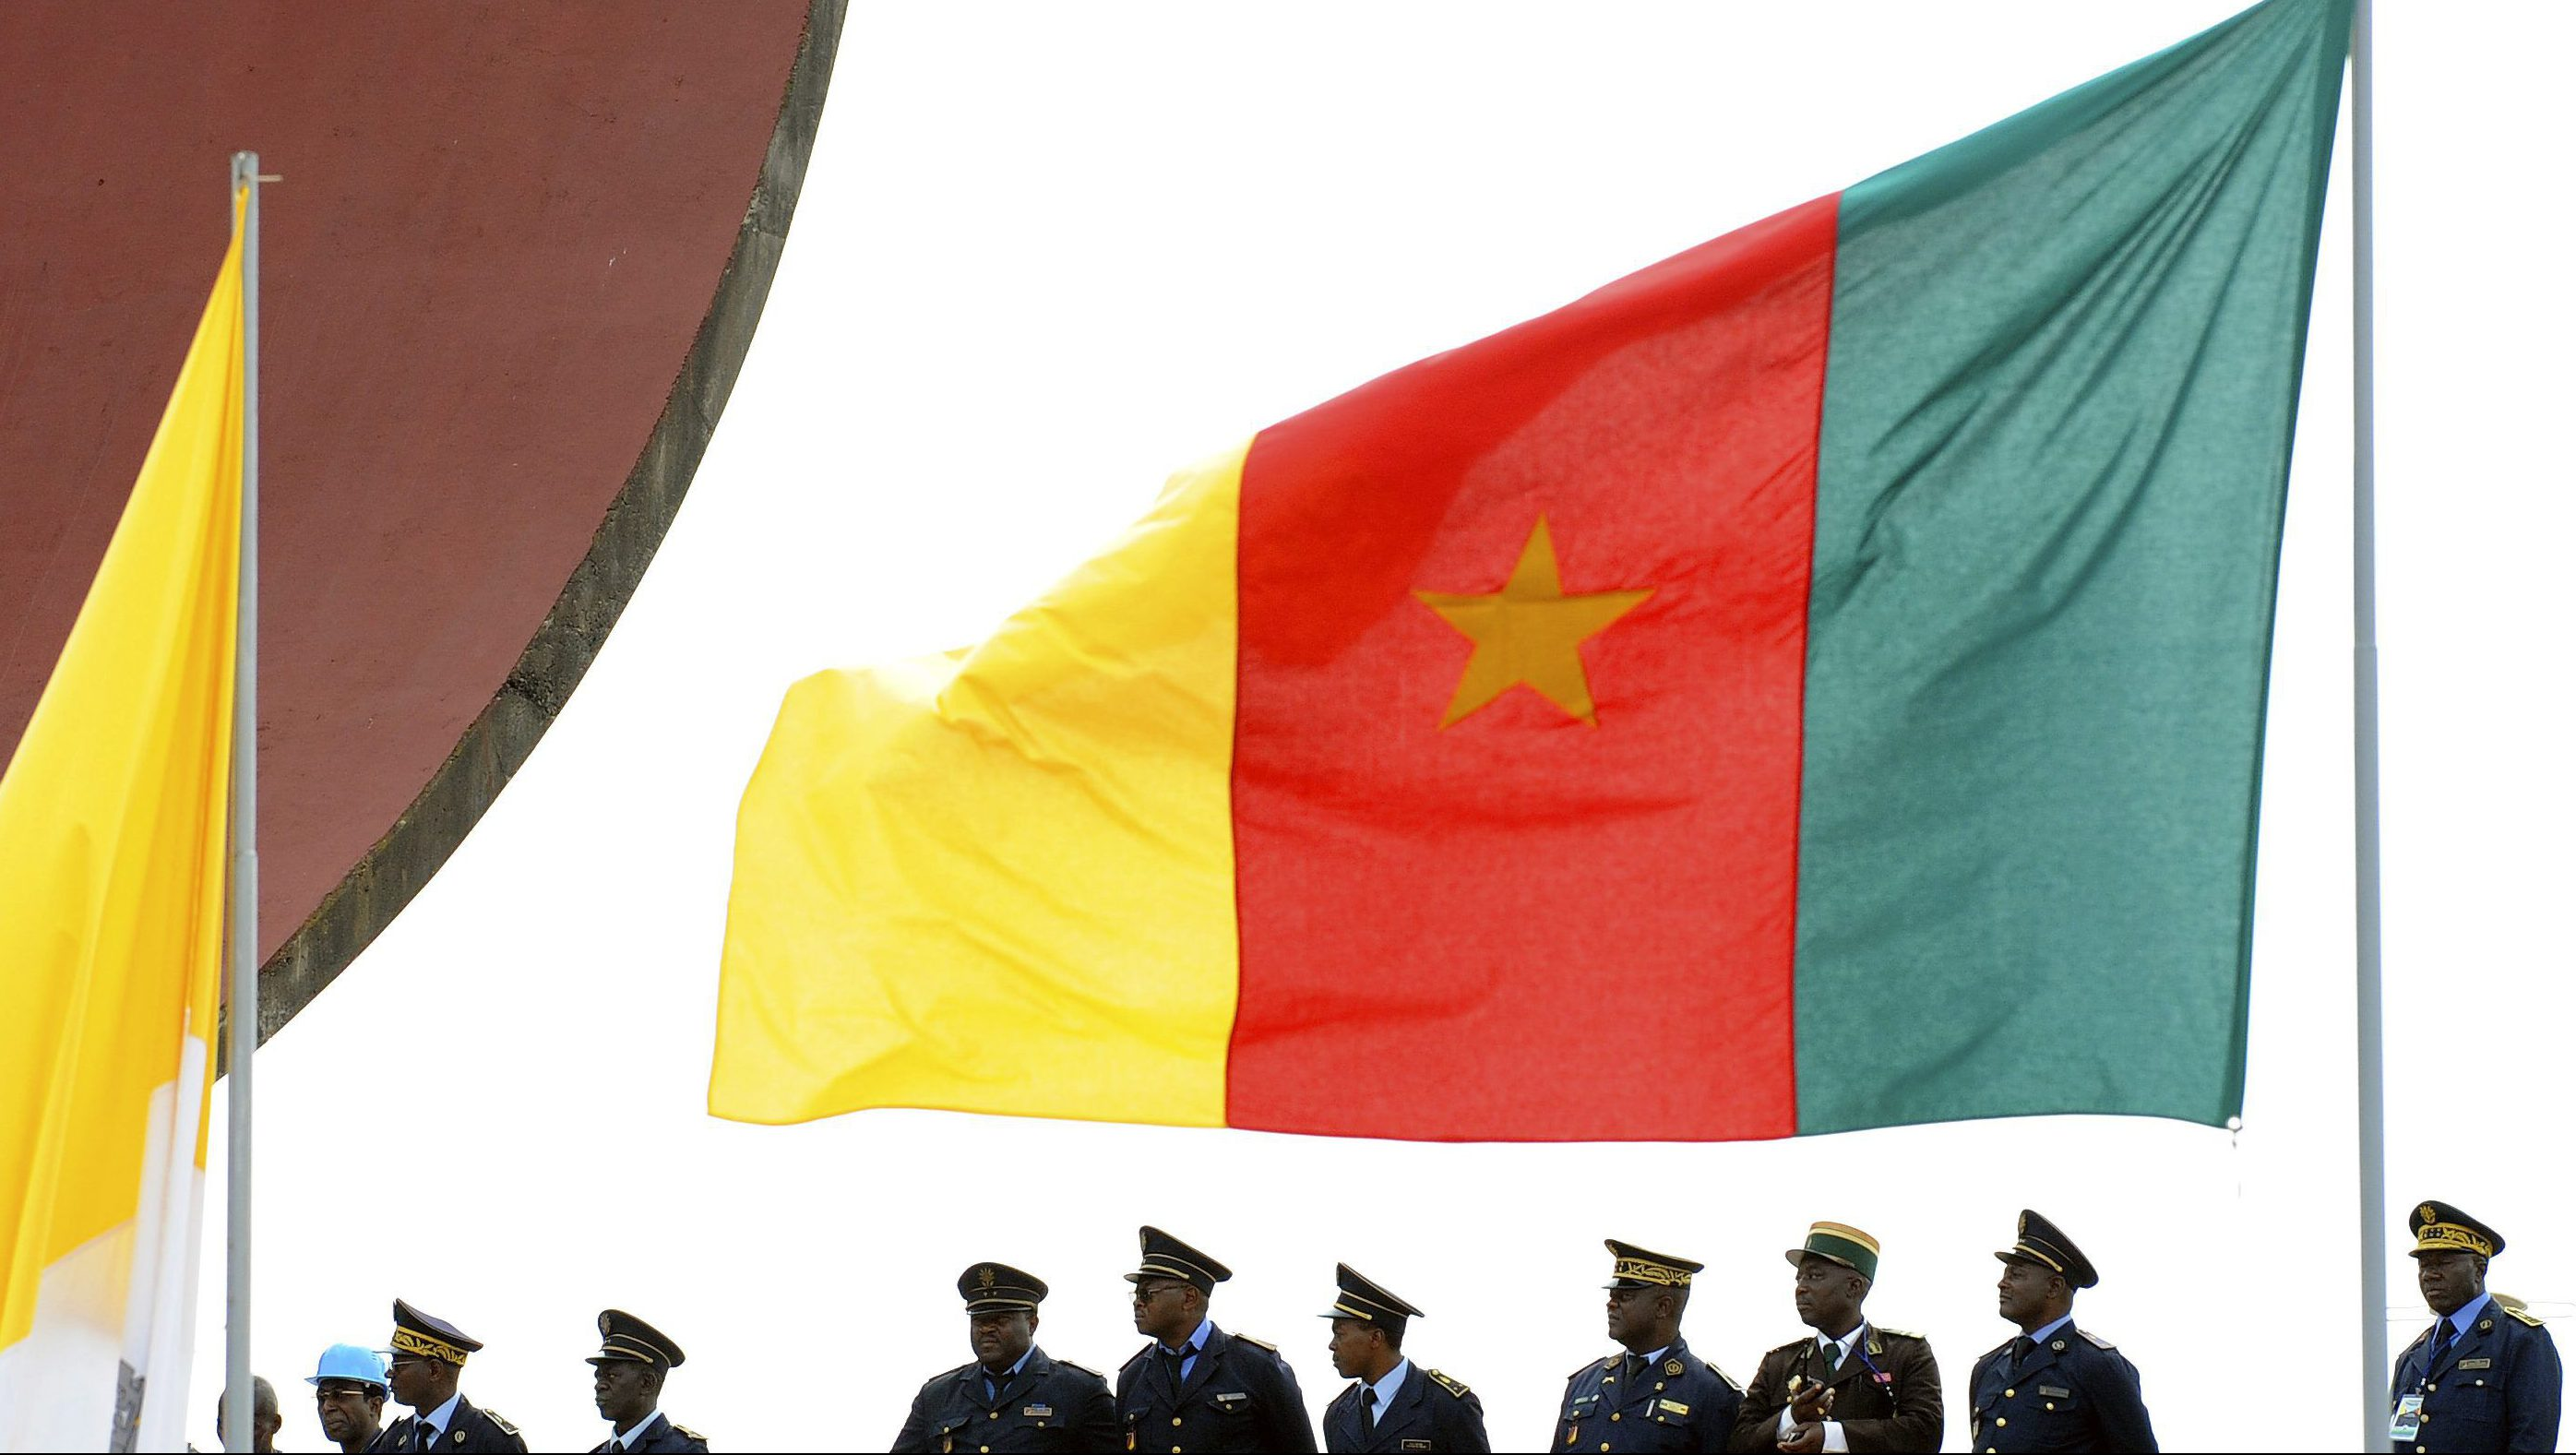 Cameroonian police stand near a national flag during a mass led by Pope Benedict XVI at Amadou Ahidjo stadium in Yaounde